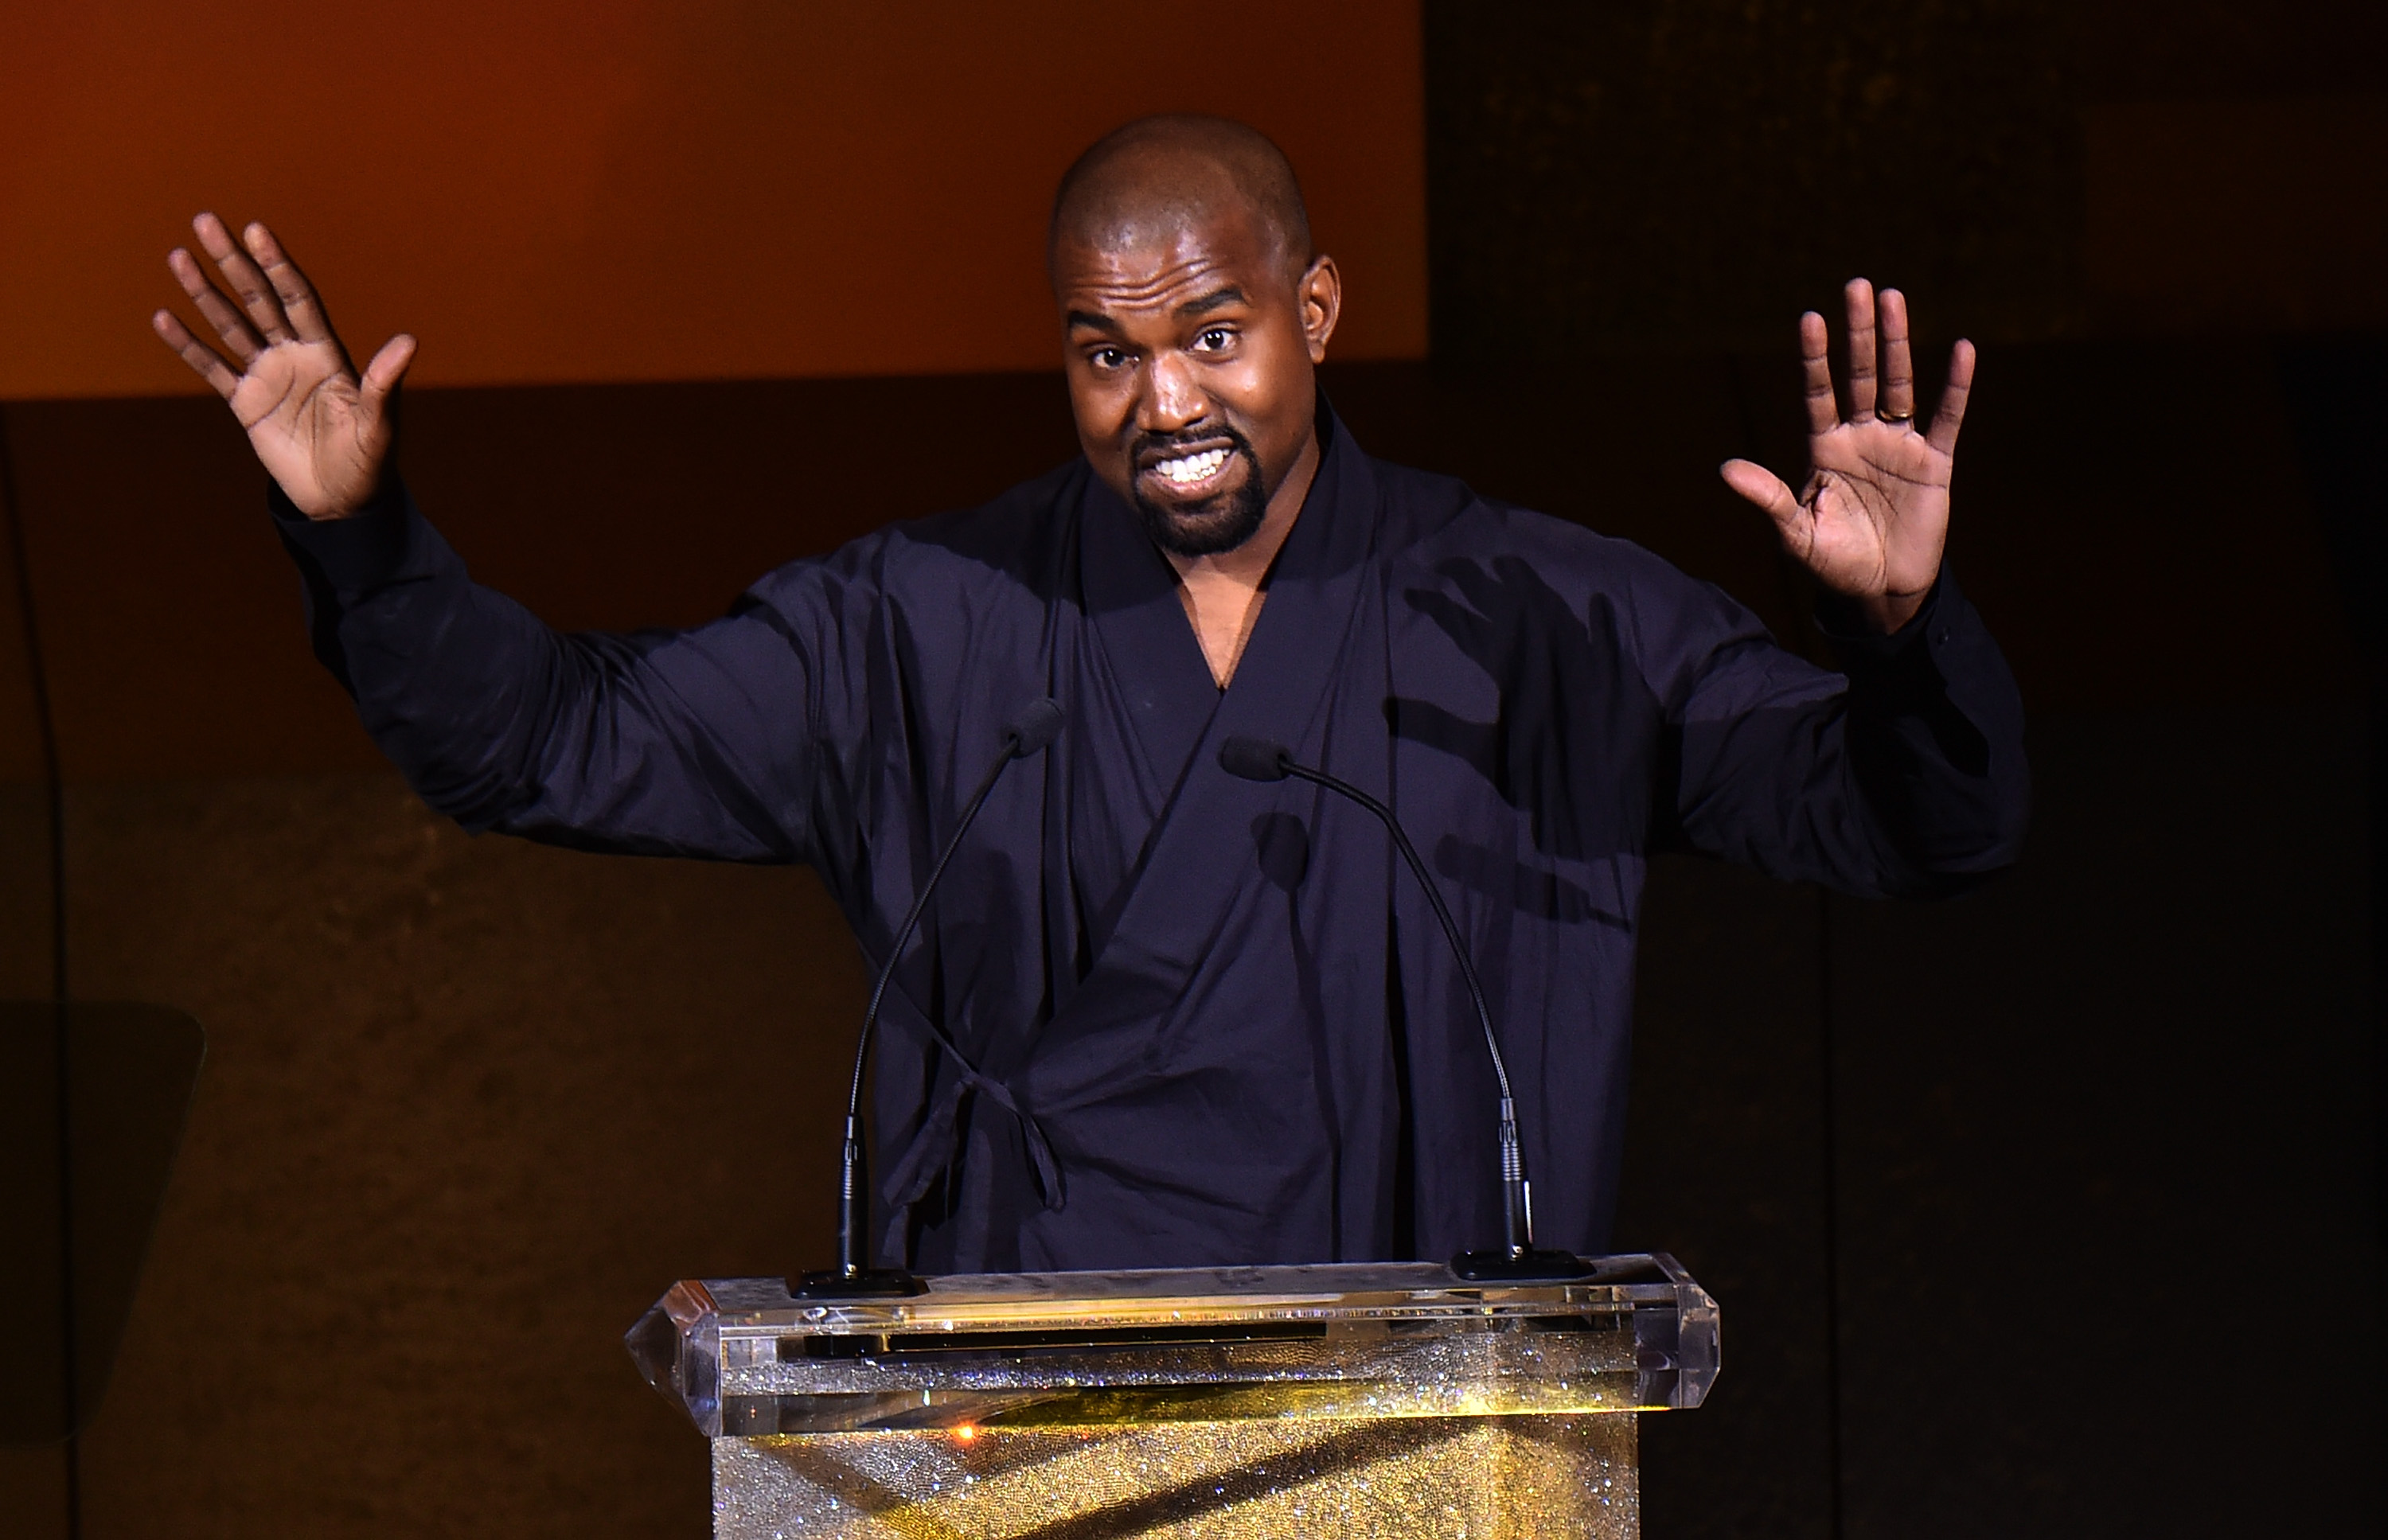 NEW YORK, NY - JUNE 01: Kanye West presents the Fashion Icon Award to Pharrell Williams onstage at the 2015 CFDA Fashion Awards at Alice Tully Hall at Lincoln Center on June 1, 2015 in New York City. (Photo by Michael Loccisano/Getty Images)